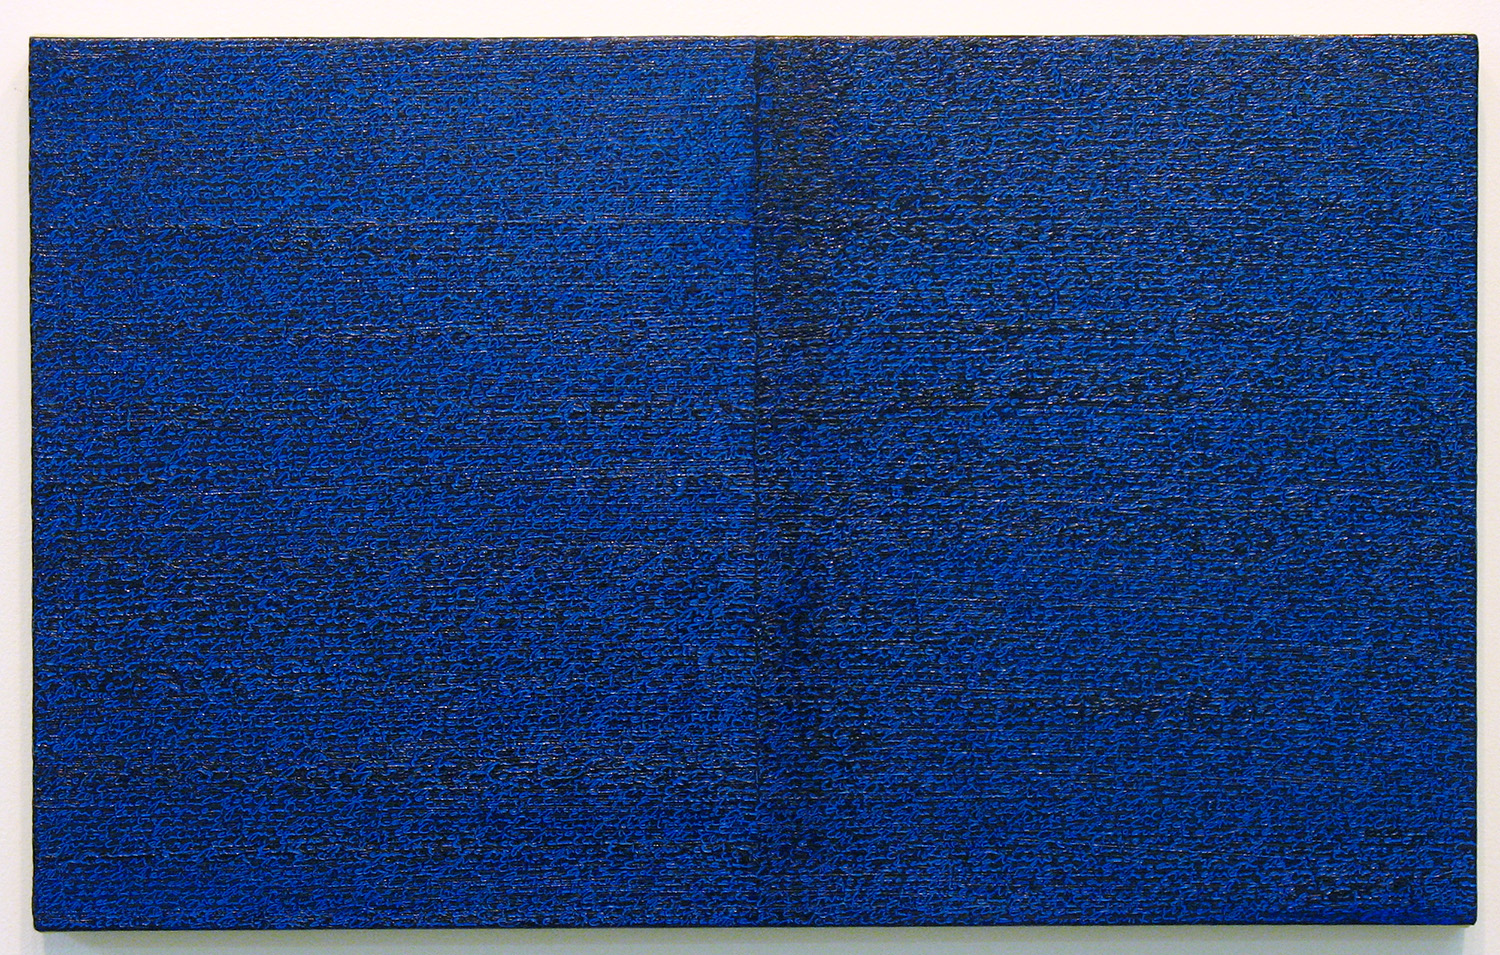 Open Book -blue-blue dark-<br>oil and amber on canvas over panel, 37 x 60 cm, 2008